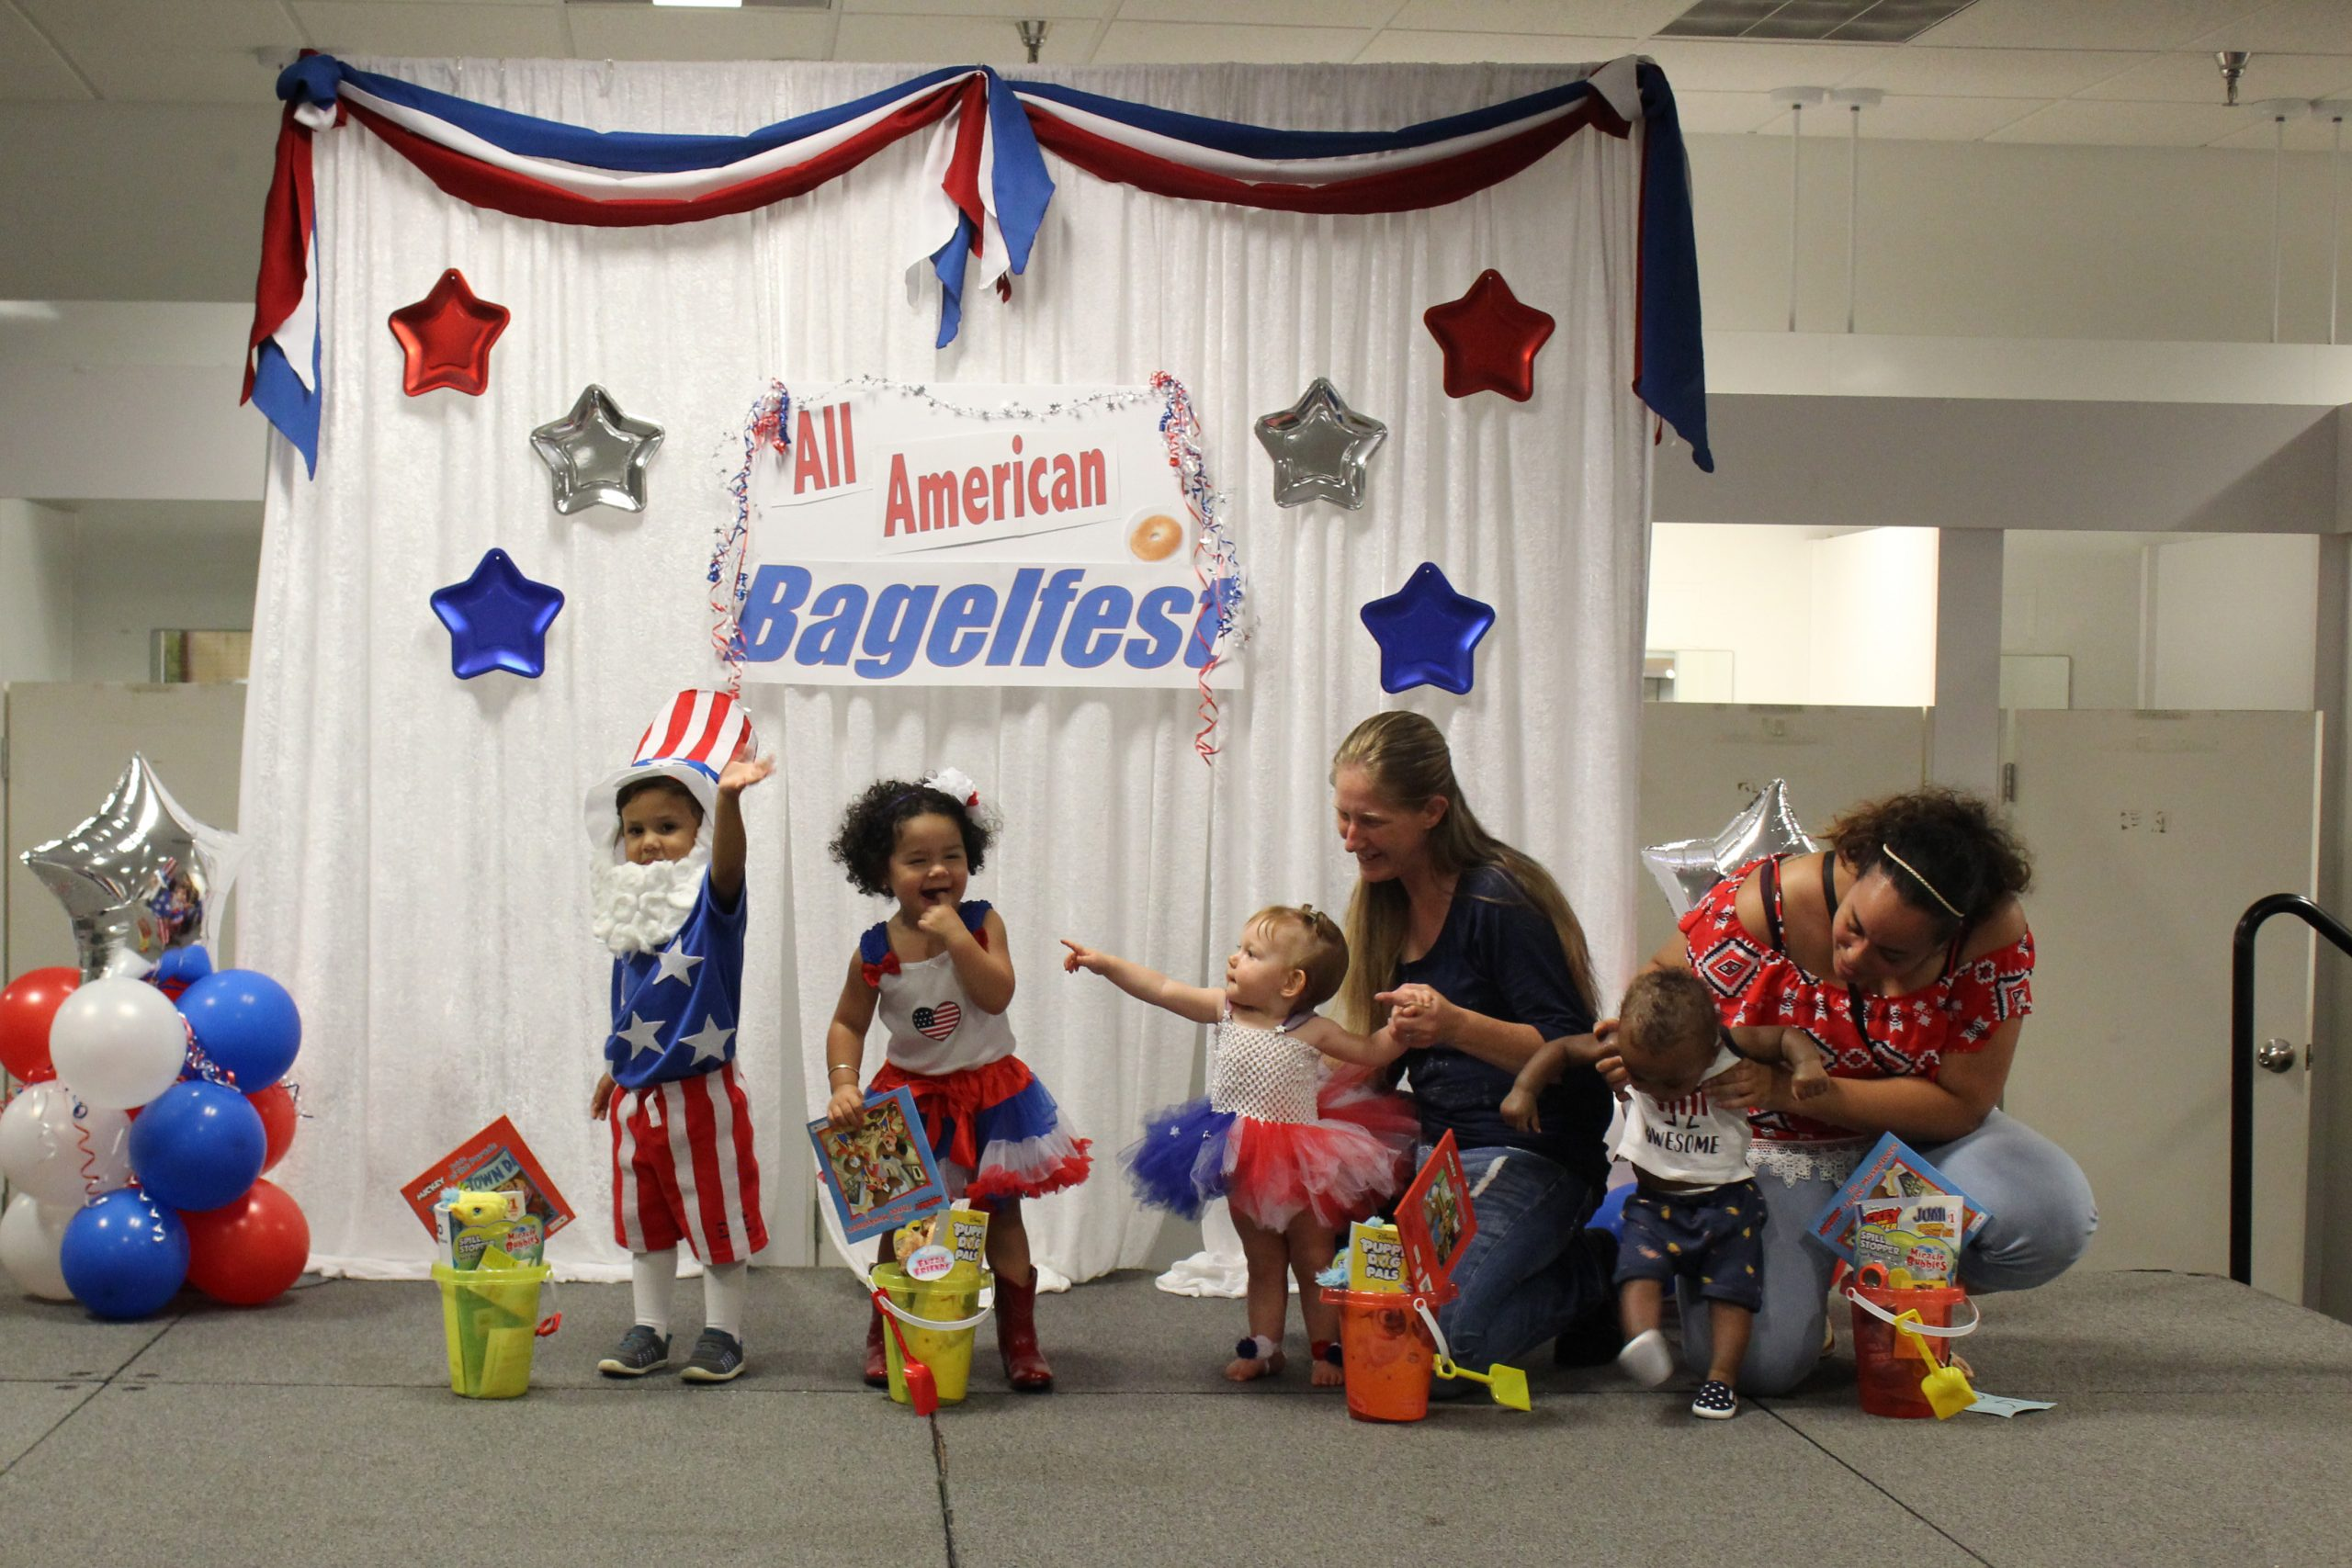 Bagelfest Beautiful Baby Contest – First Night Winners